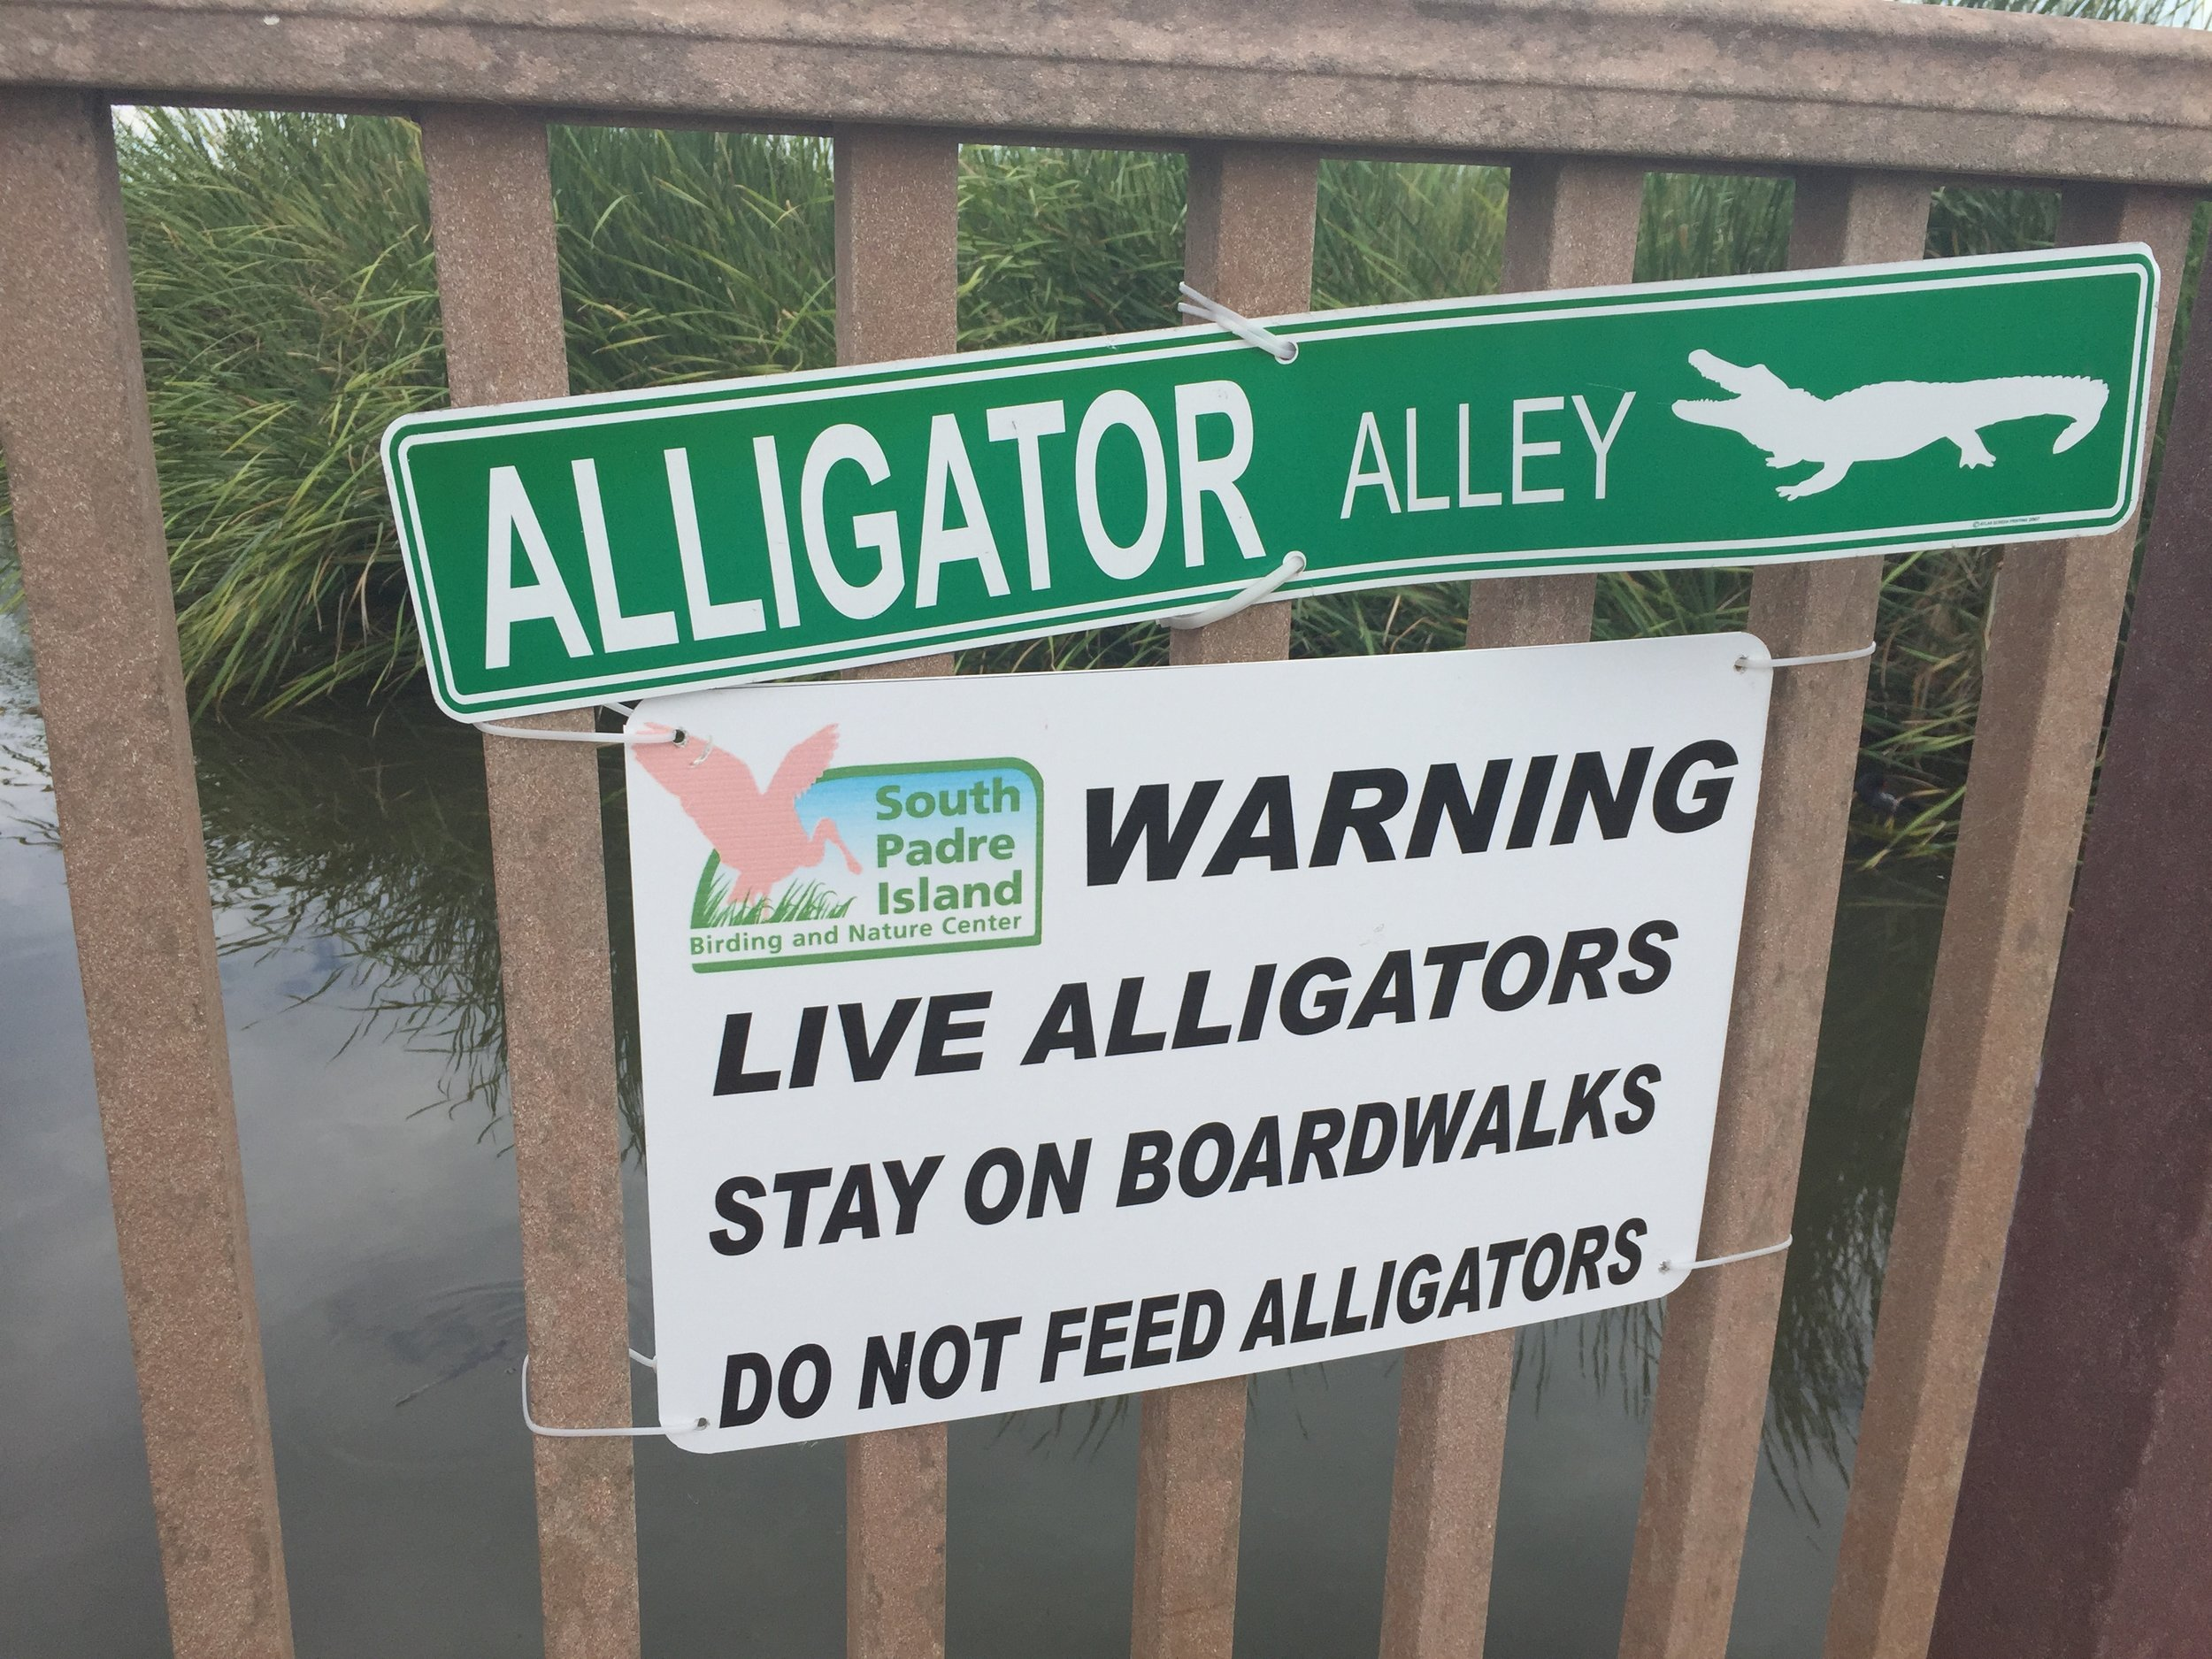 Pretty clear signage. I want to see an alligator!